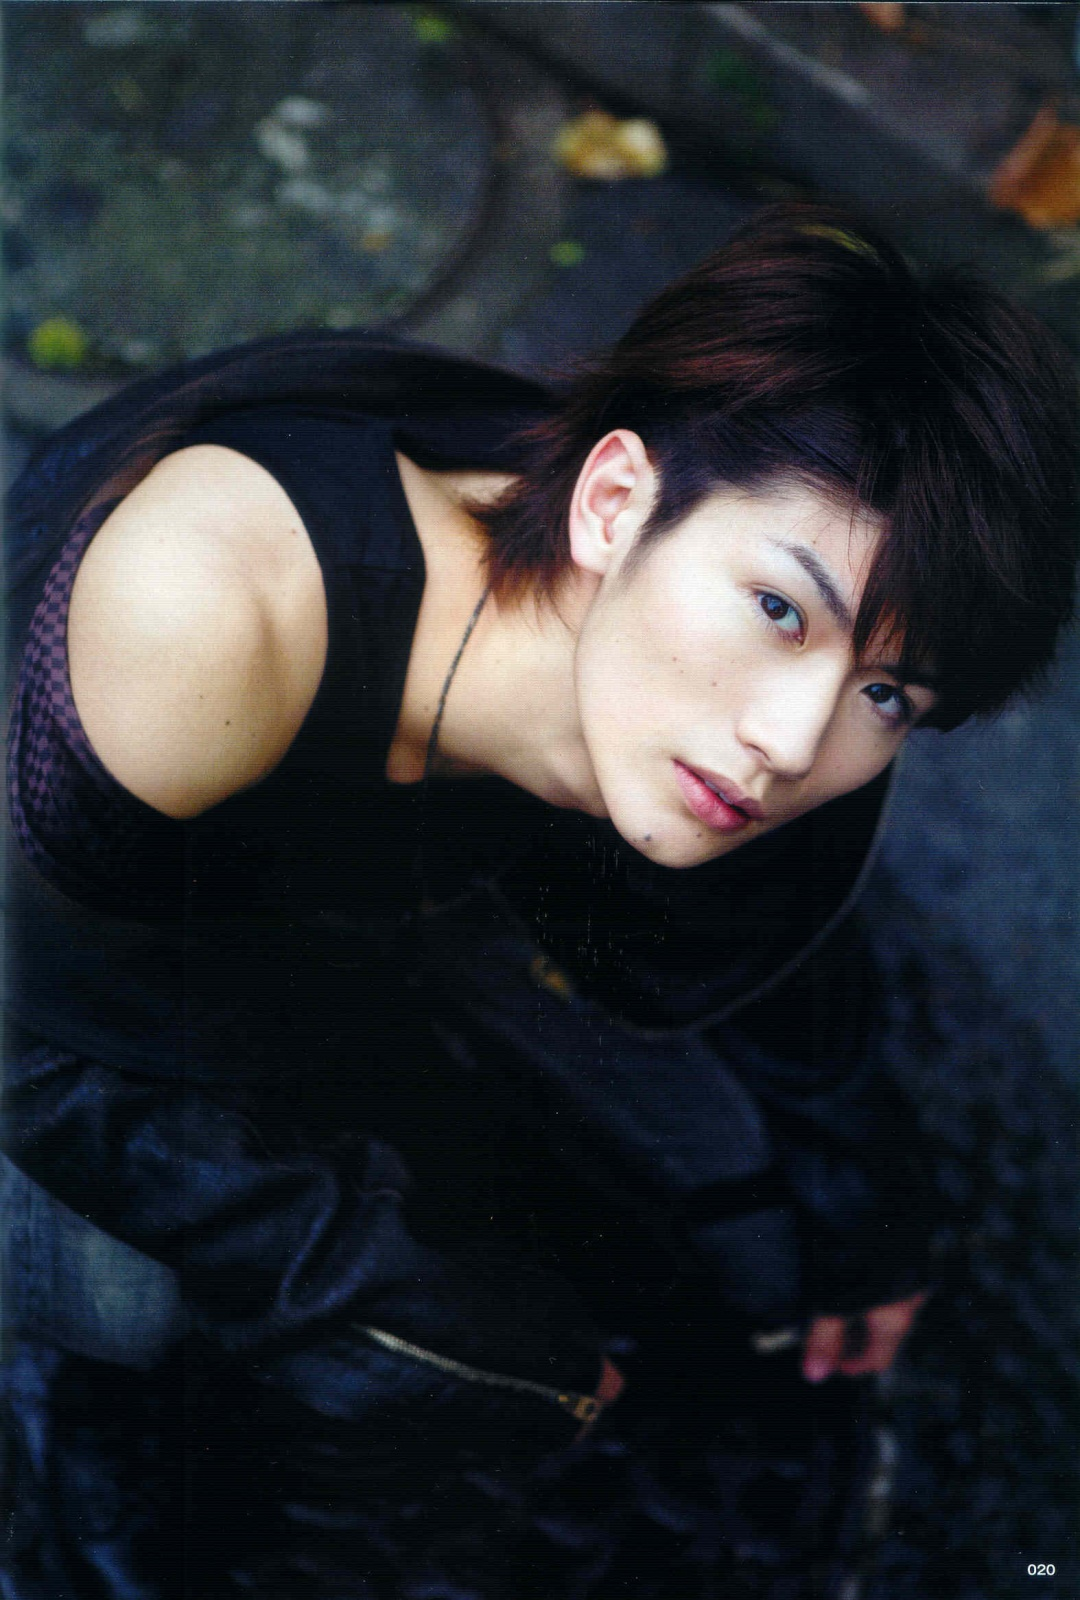 Favorite Asian Actor/Actress? Miura_haruma_212093